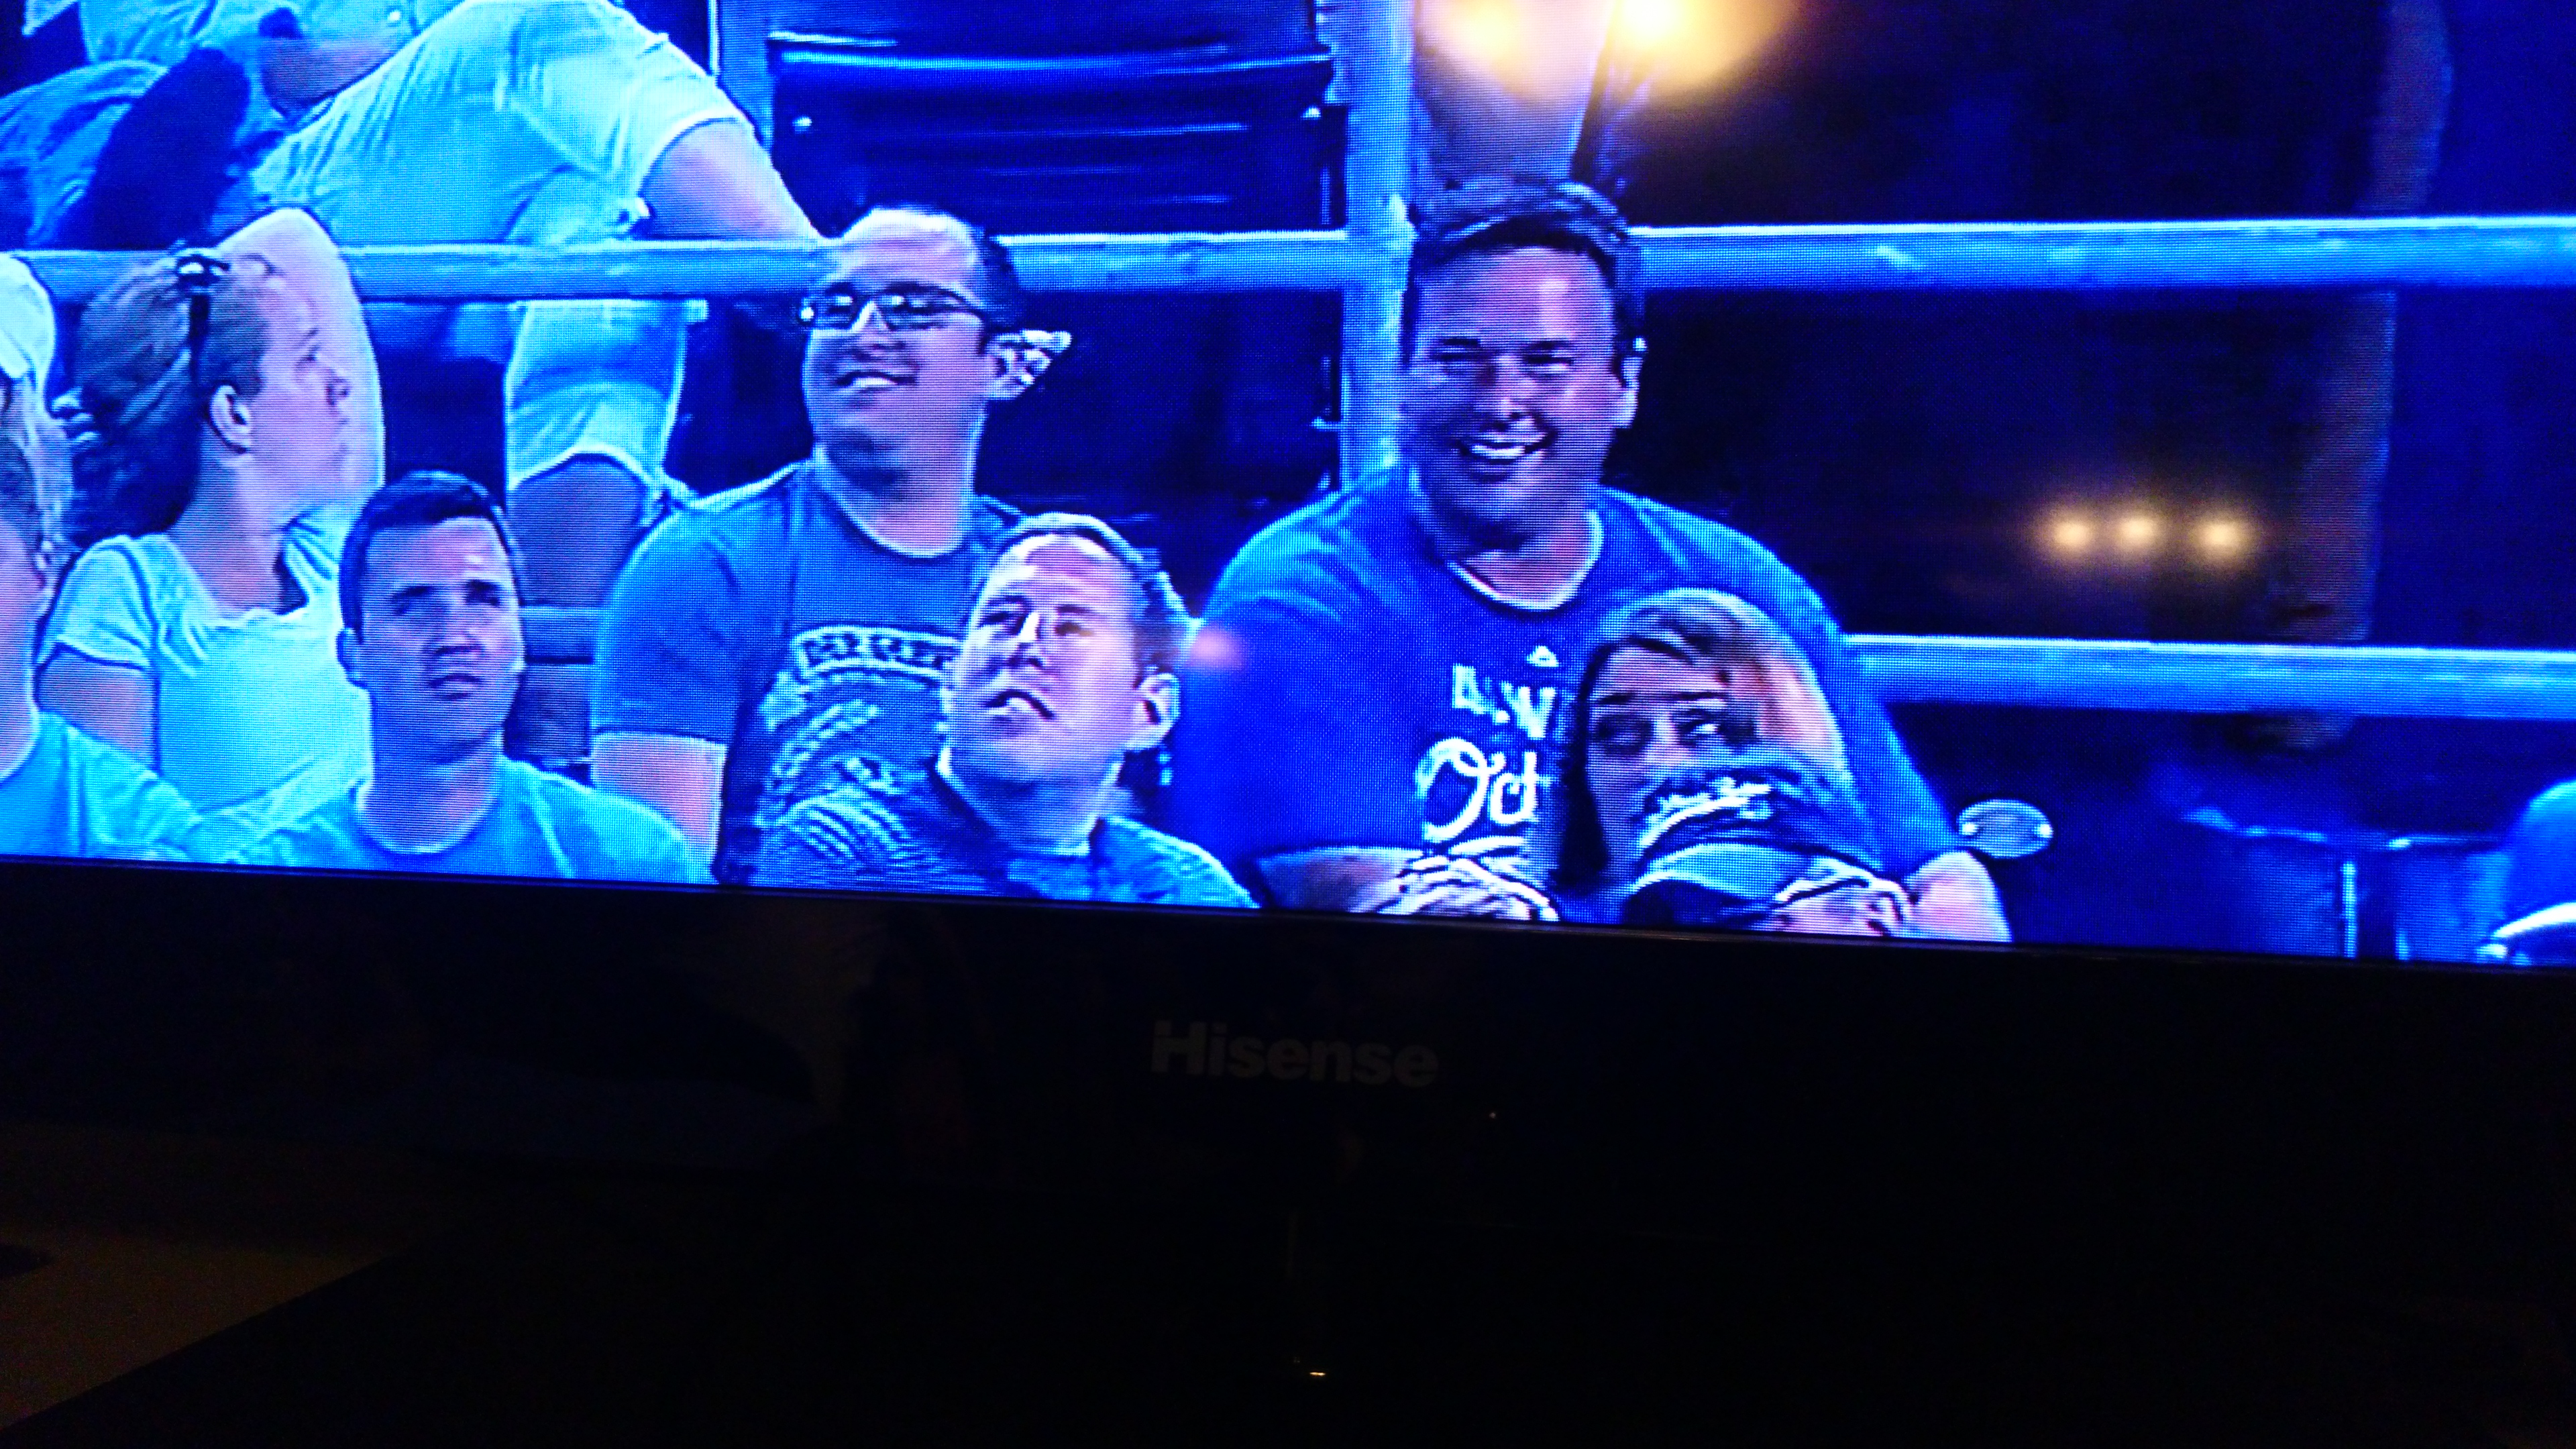 Look who\'s cheering on the Royals